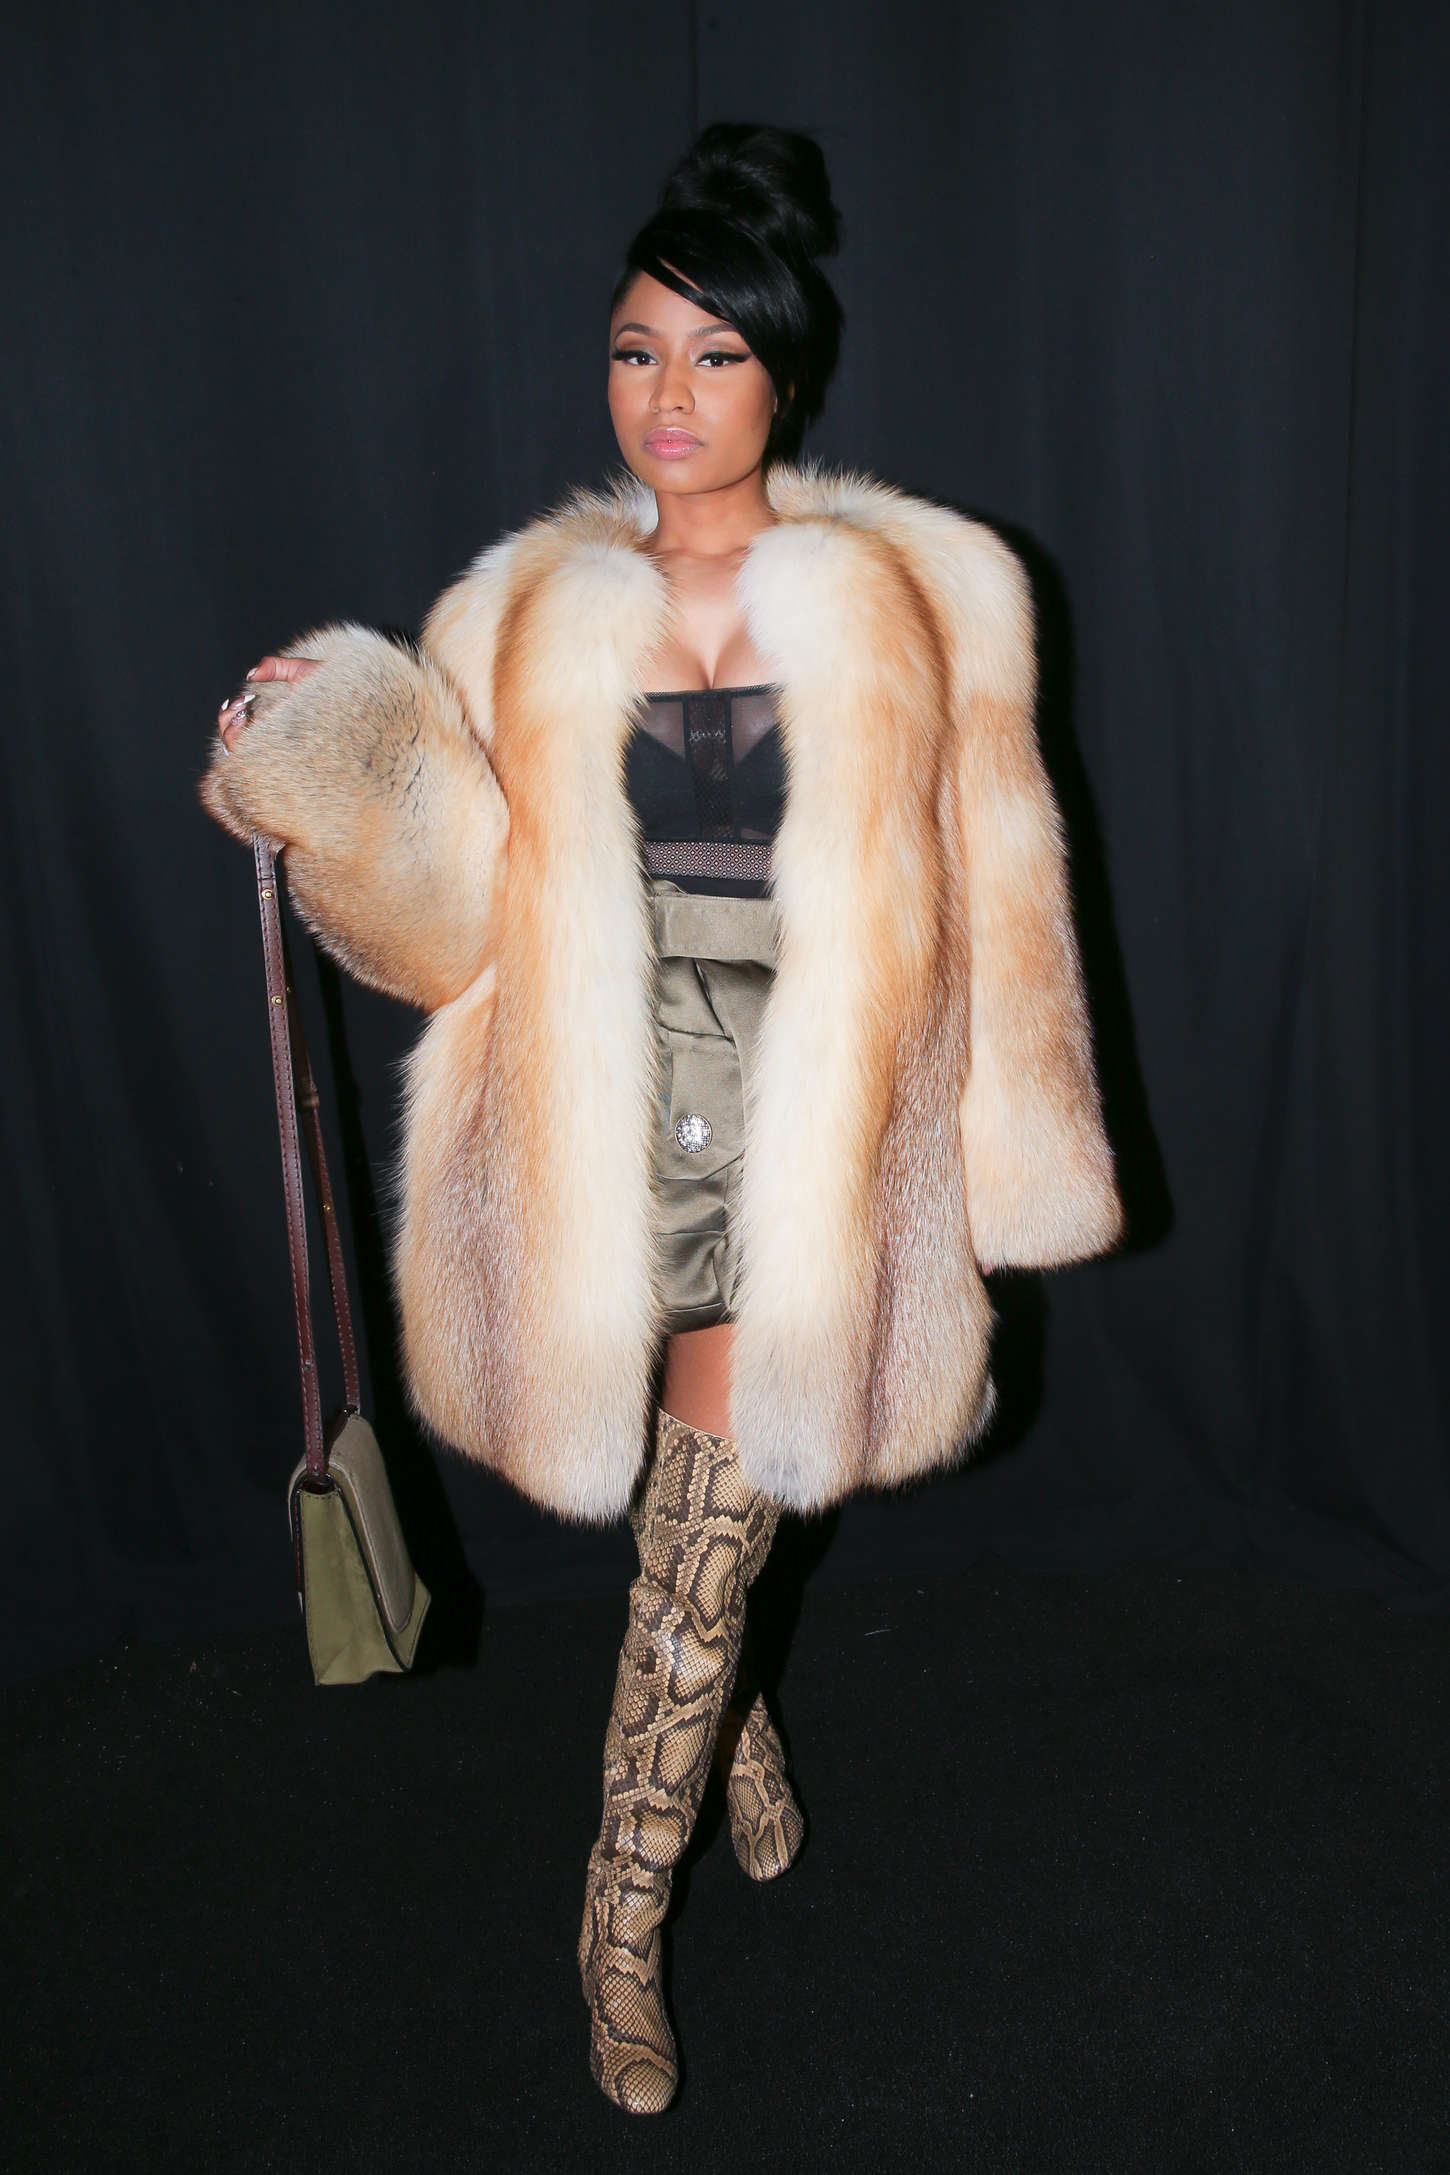 Nicki Minaj Marc Jacobs Fashion Show 2015 11 Gotceleb